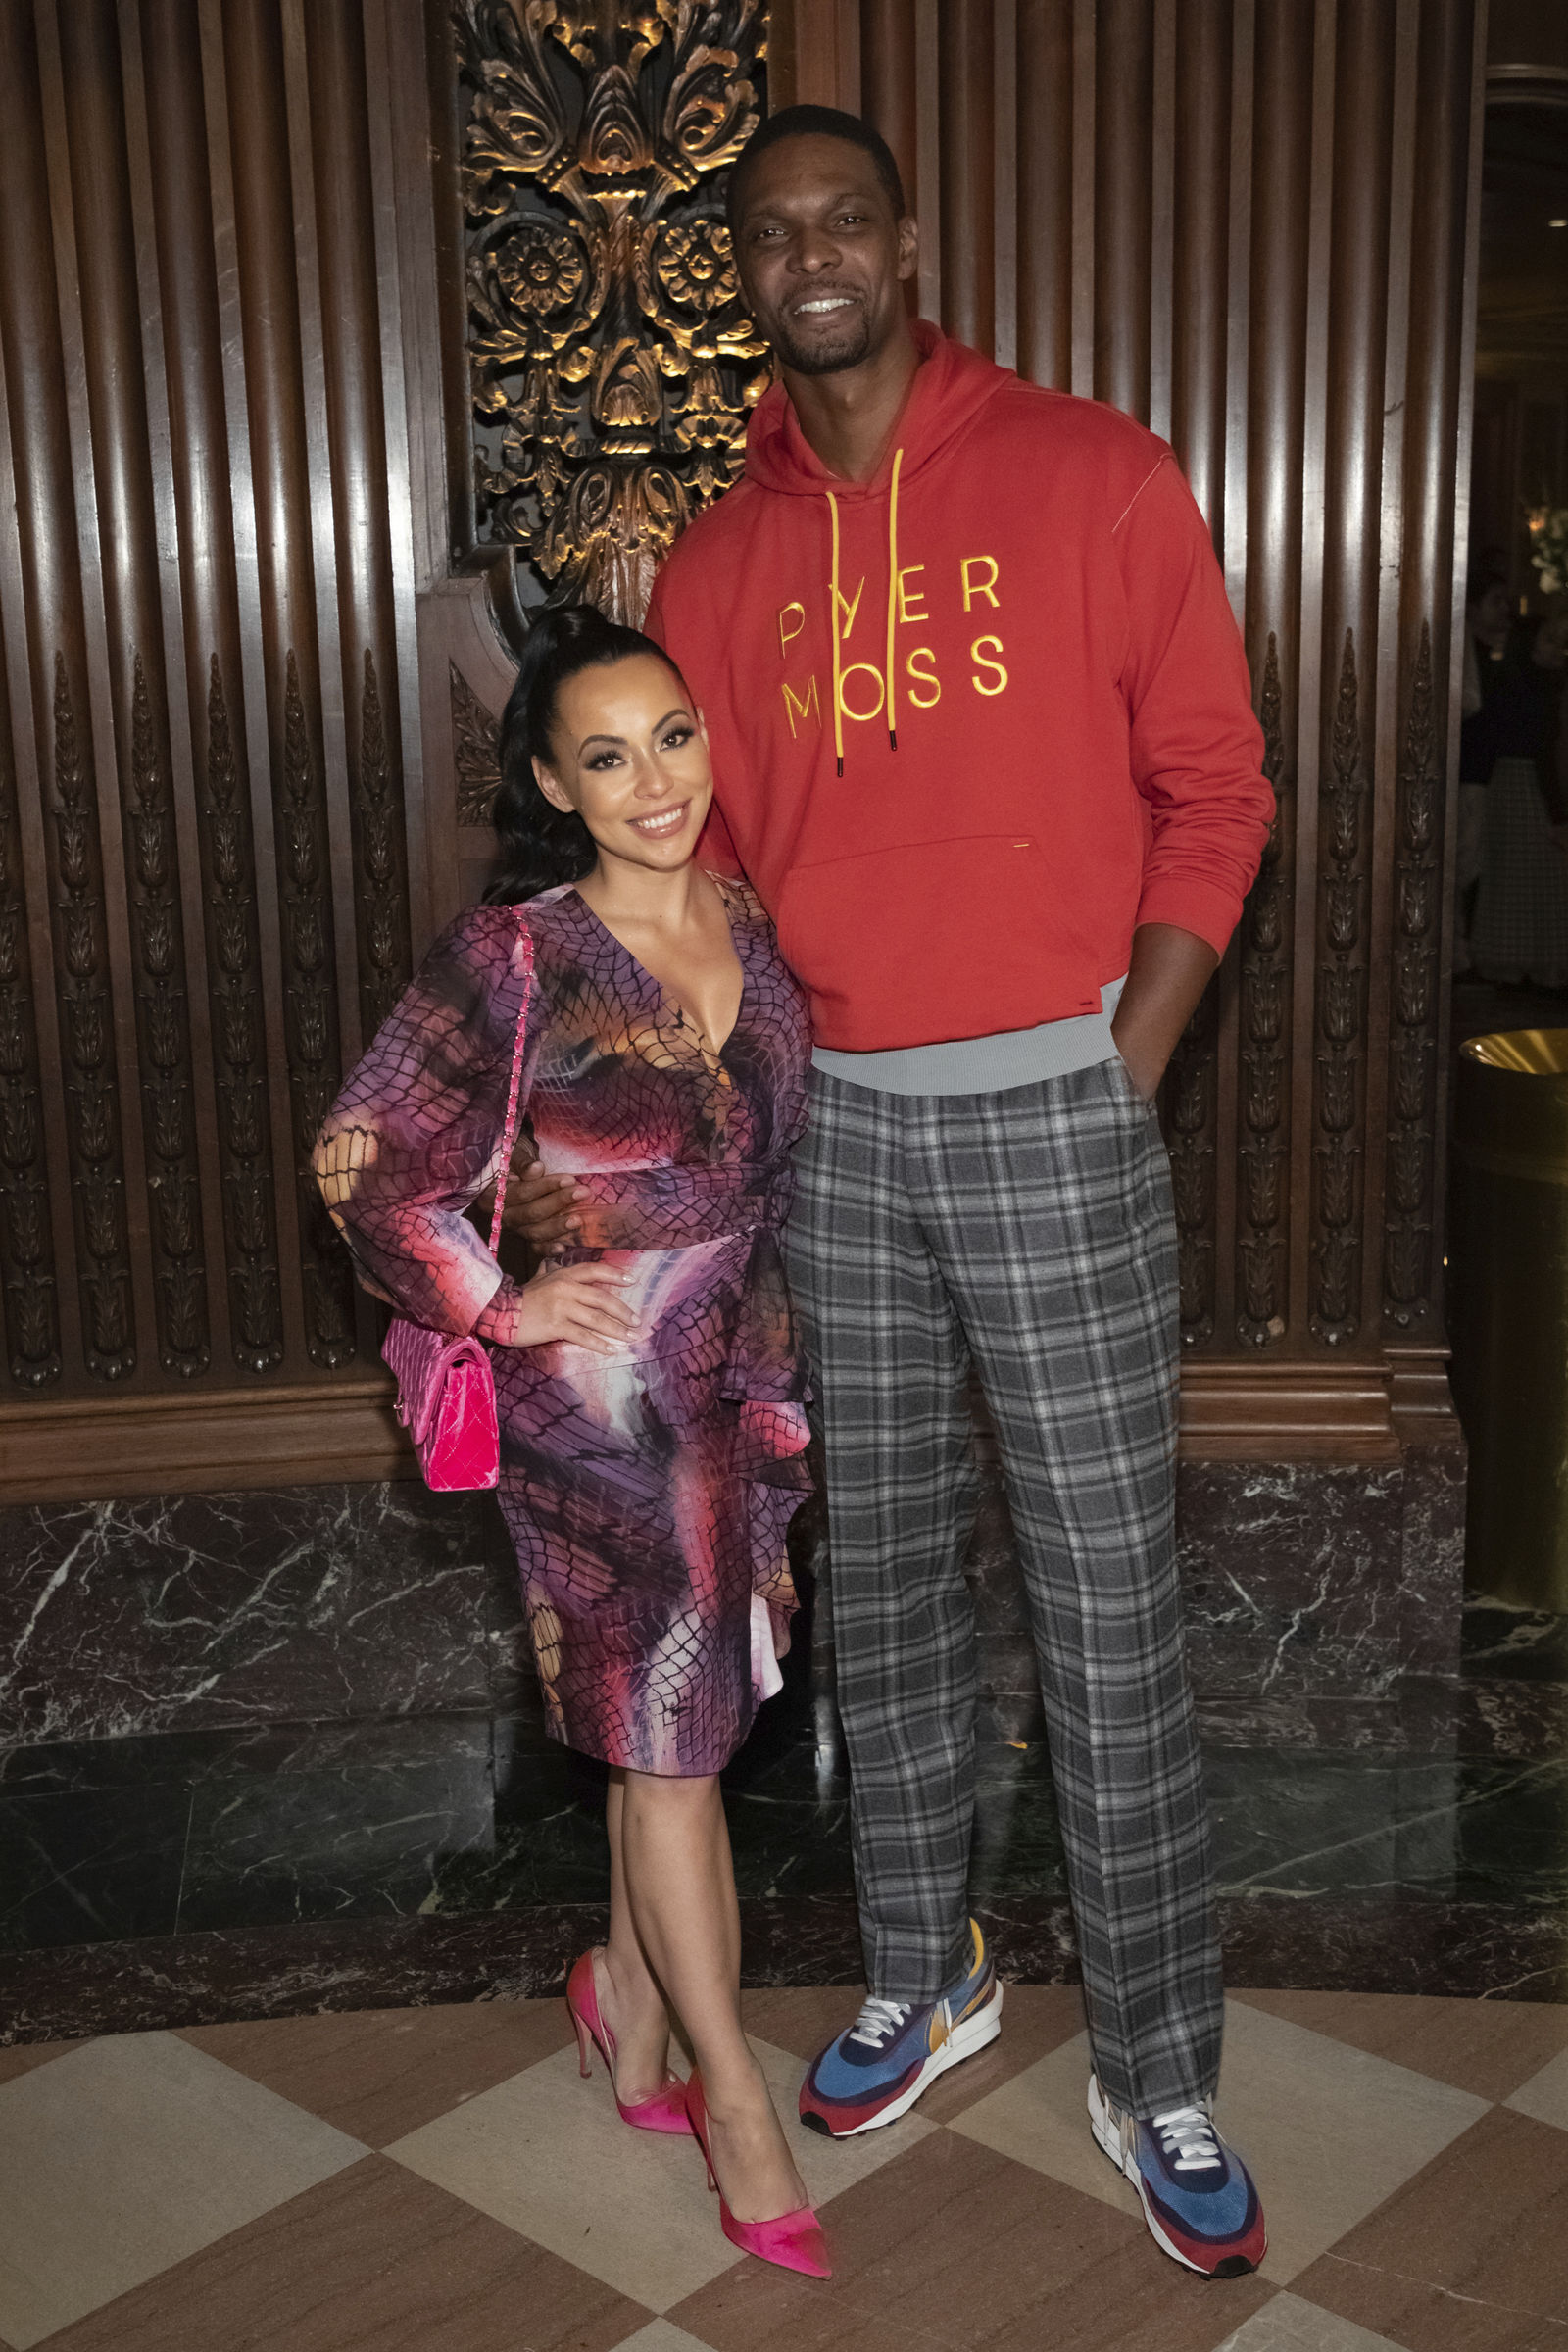 Professional basketball player Chris Bosh and a guest attend the Pyer Moss runway show during NYFW Spring/Summer 2020 on Sunday, Sept. 8, 2019, in Brooklyn, New York. (Photo by Brent N. Clarke/Invision/AP)